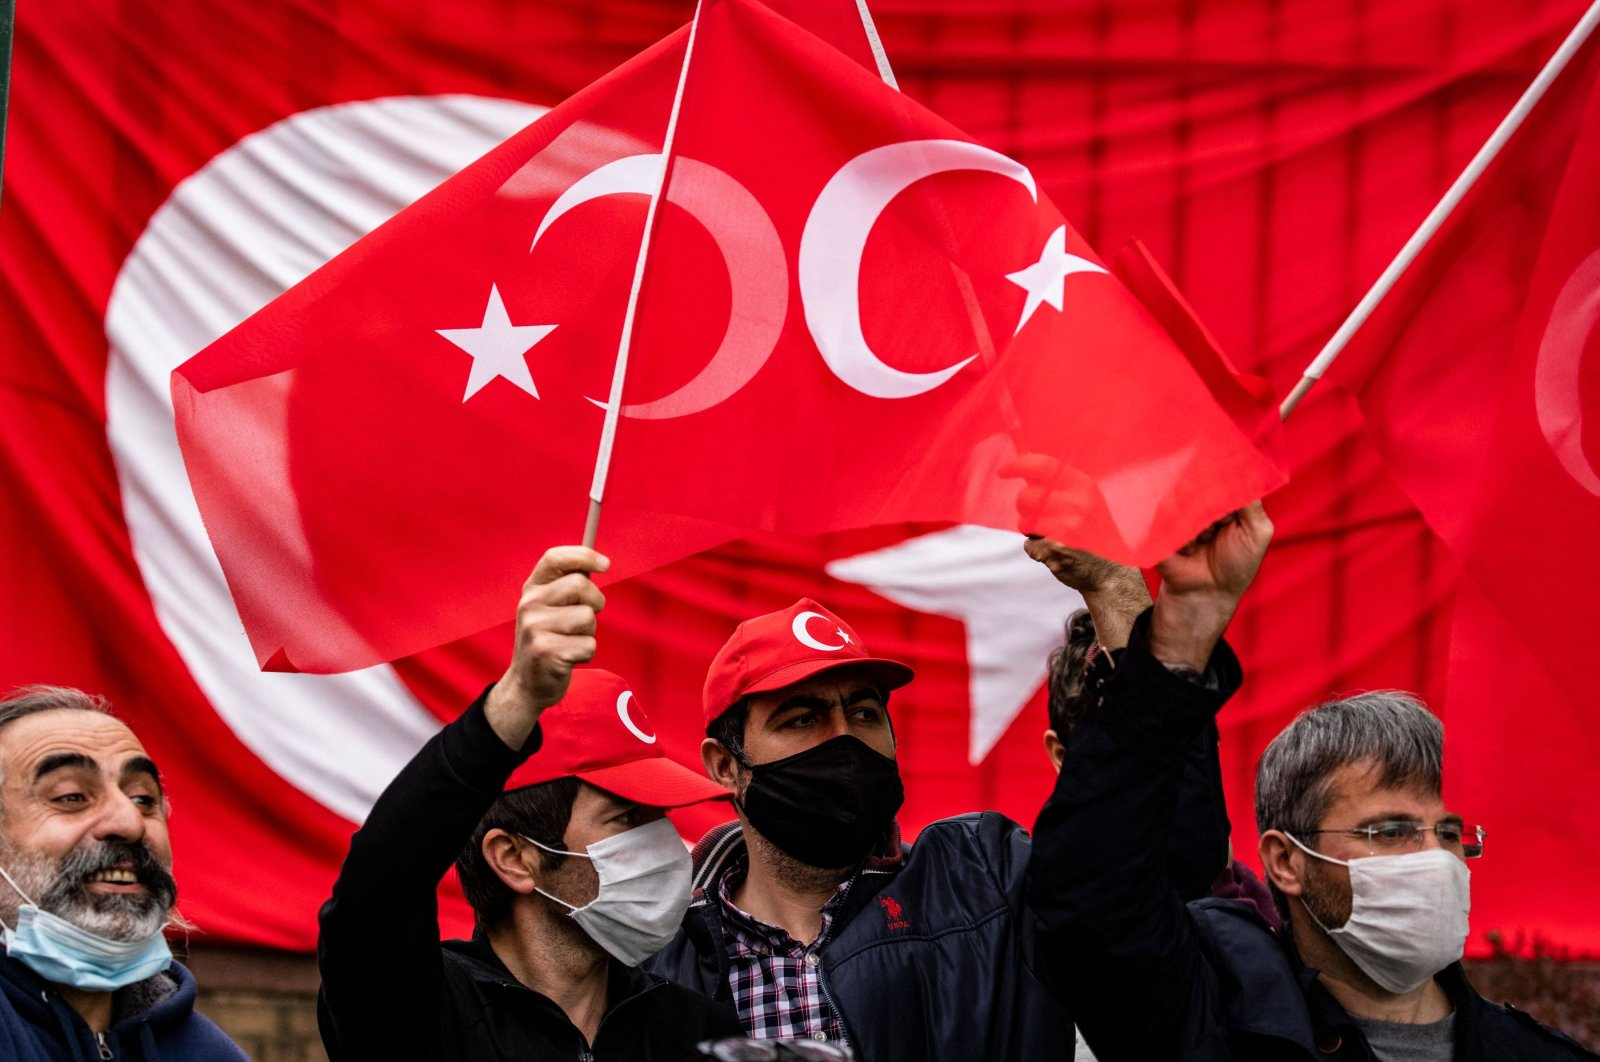 Turkish counter-protestors are kept apart from Armenian protestors to avoid confrontation in front of the Turkish Embassy on the 106th anniversary of the 1915 events in Washington, DC on April 24, 2021. (AFP)